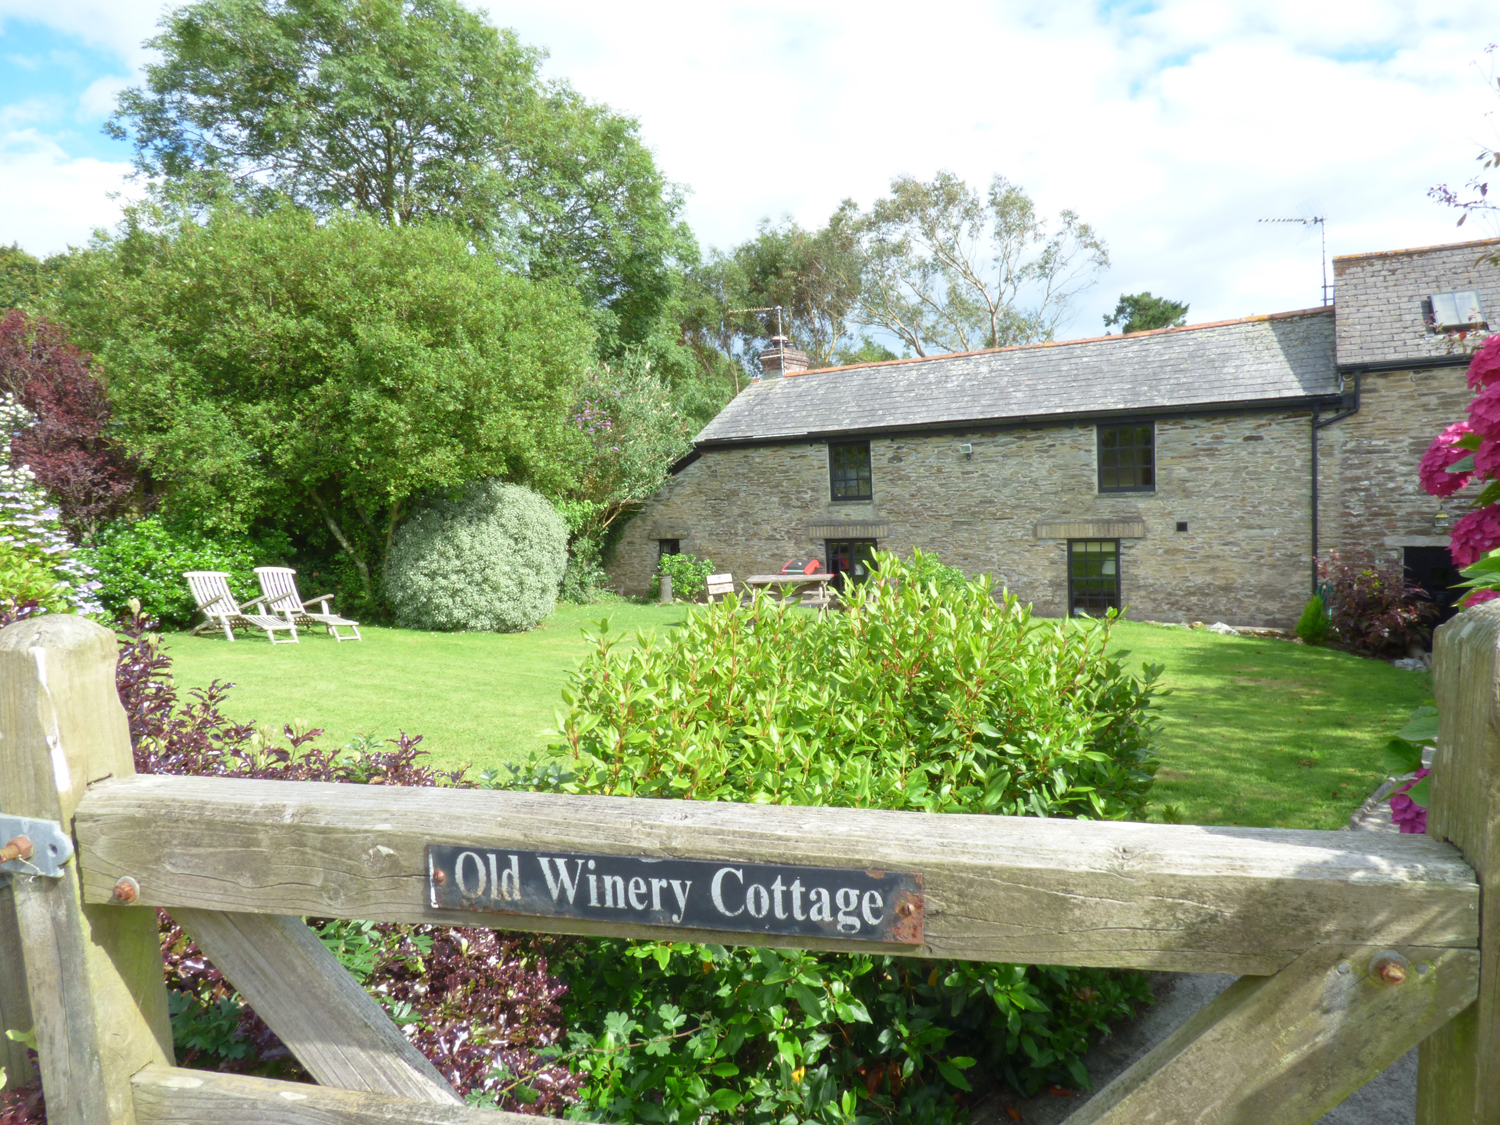 Old Winery Cottage